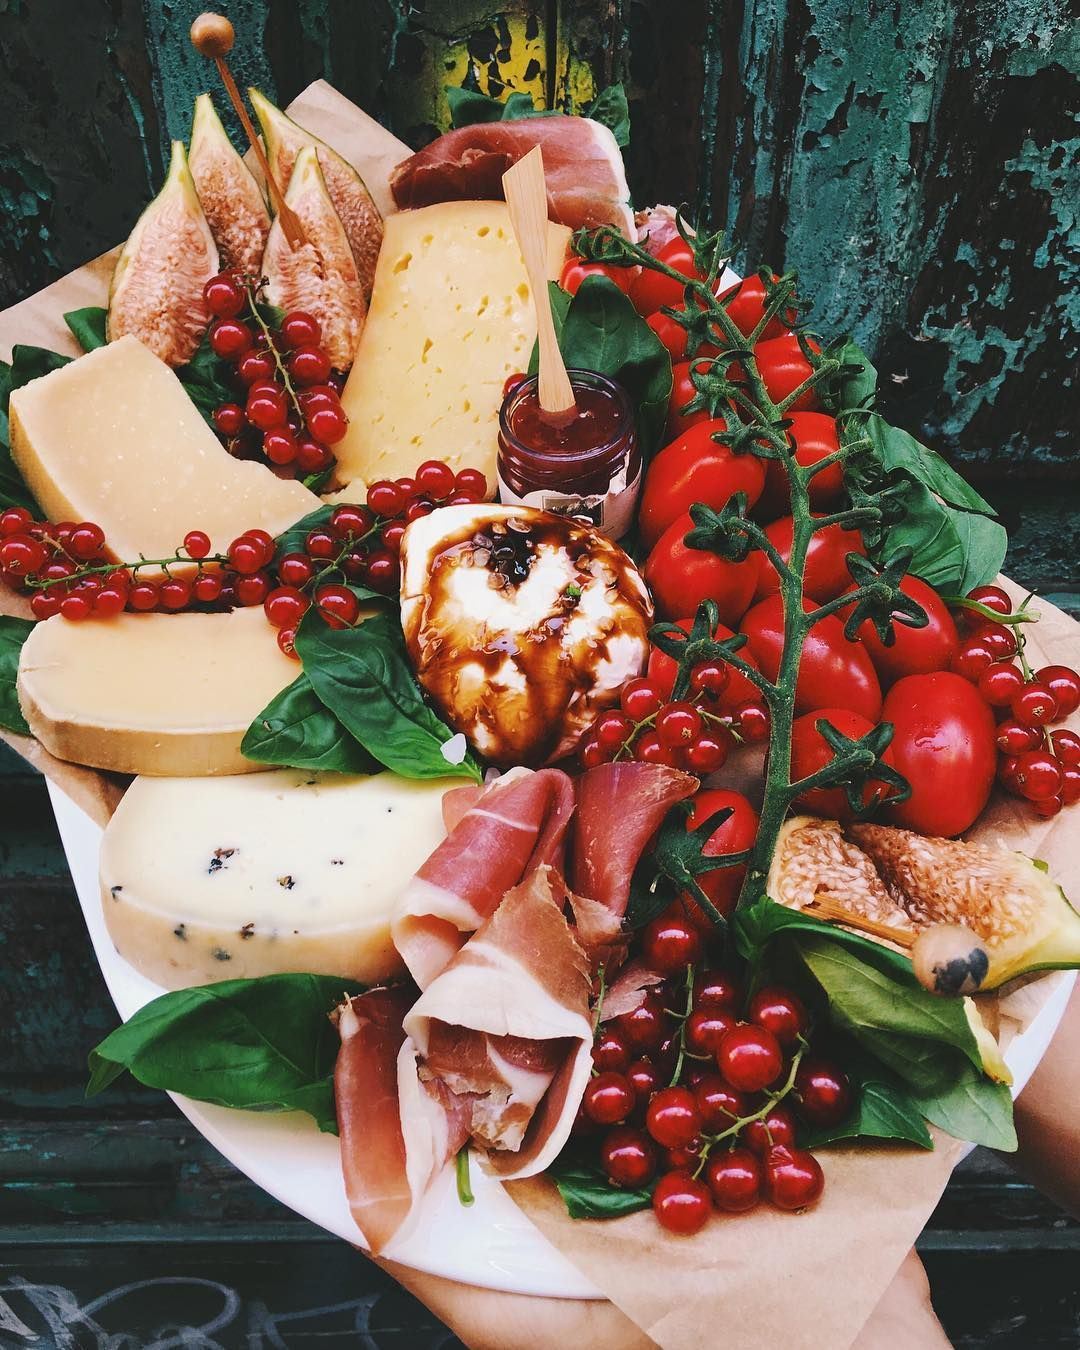 Italian Cheese And Charcuterie Plate By Grilledcheesesocial Cheeseplate Cheeseboard Charcuterie Che Cheesy Recipes Cheese Tasting Blind Wine Tasting Party